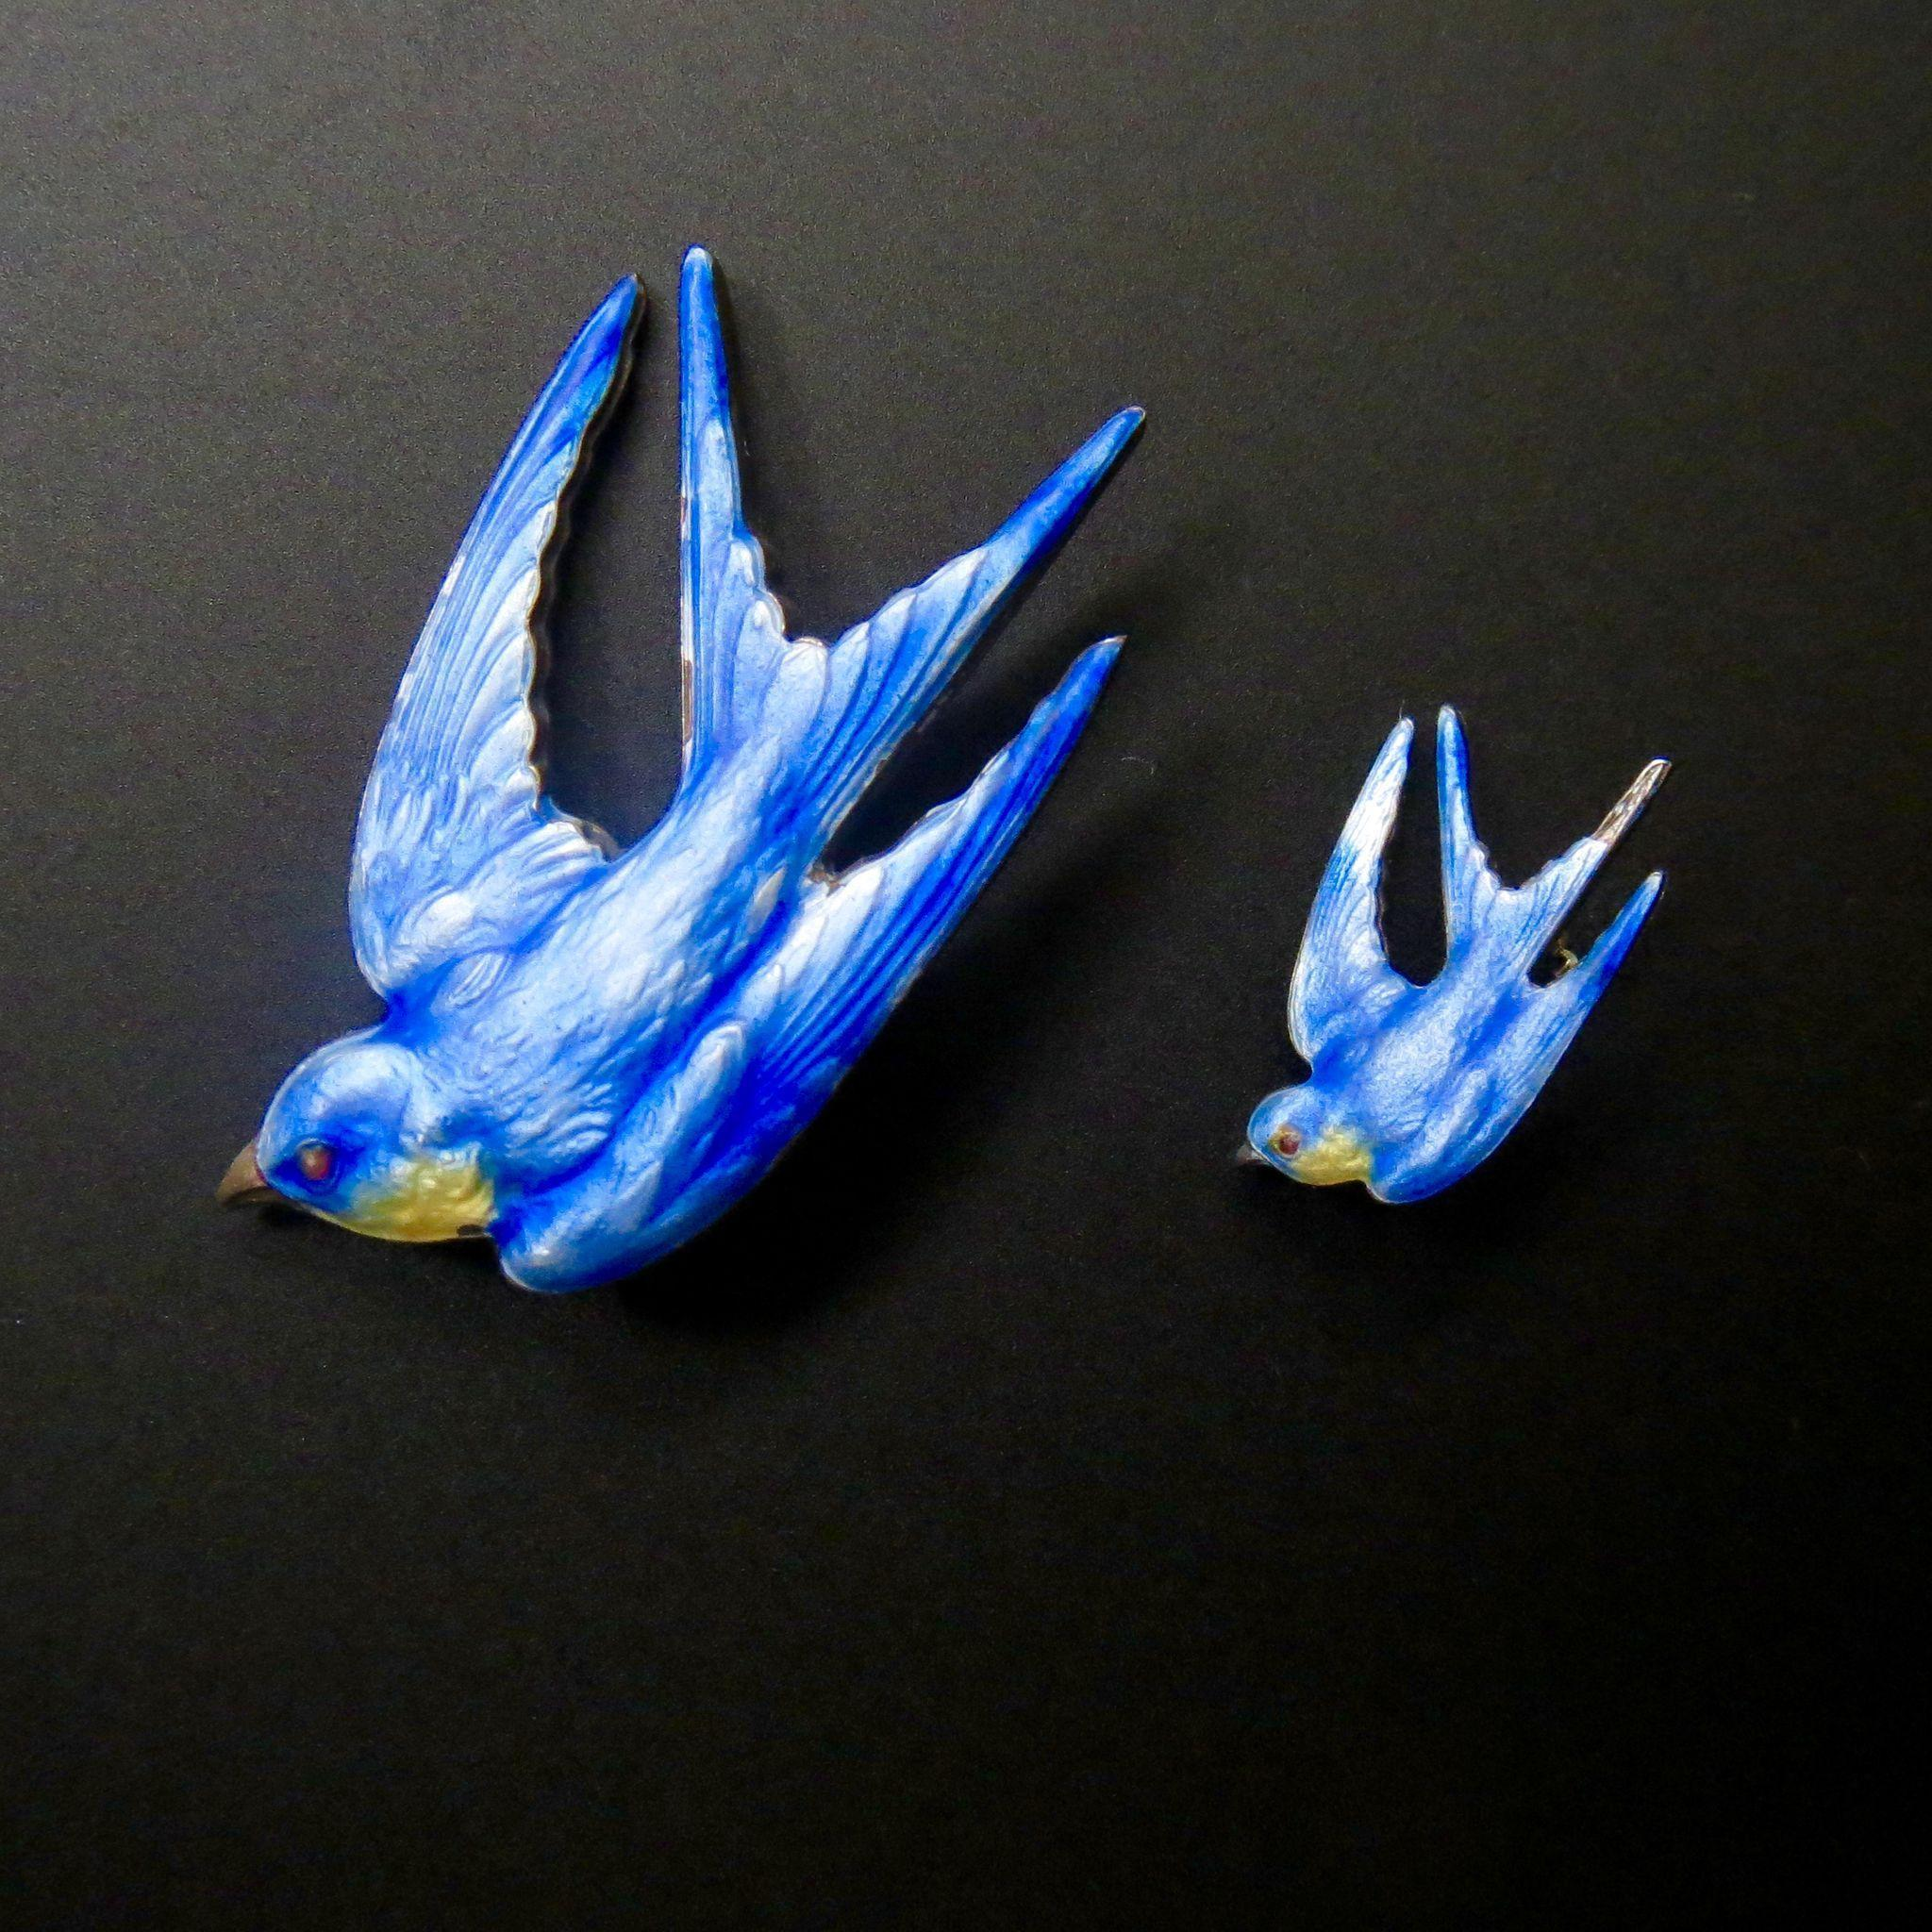 Rare Antique Paye & Baker Sterling Enamel Blue Bird Pin Set - Fully Hallmarked